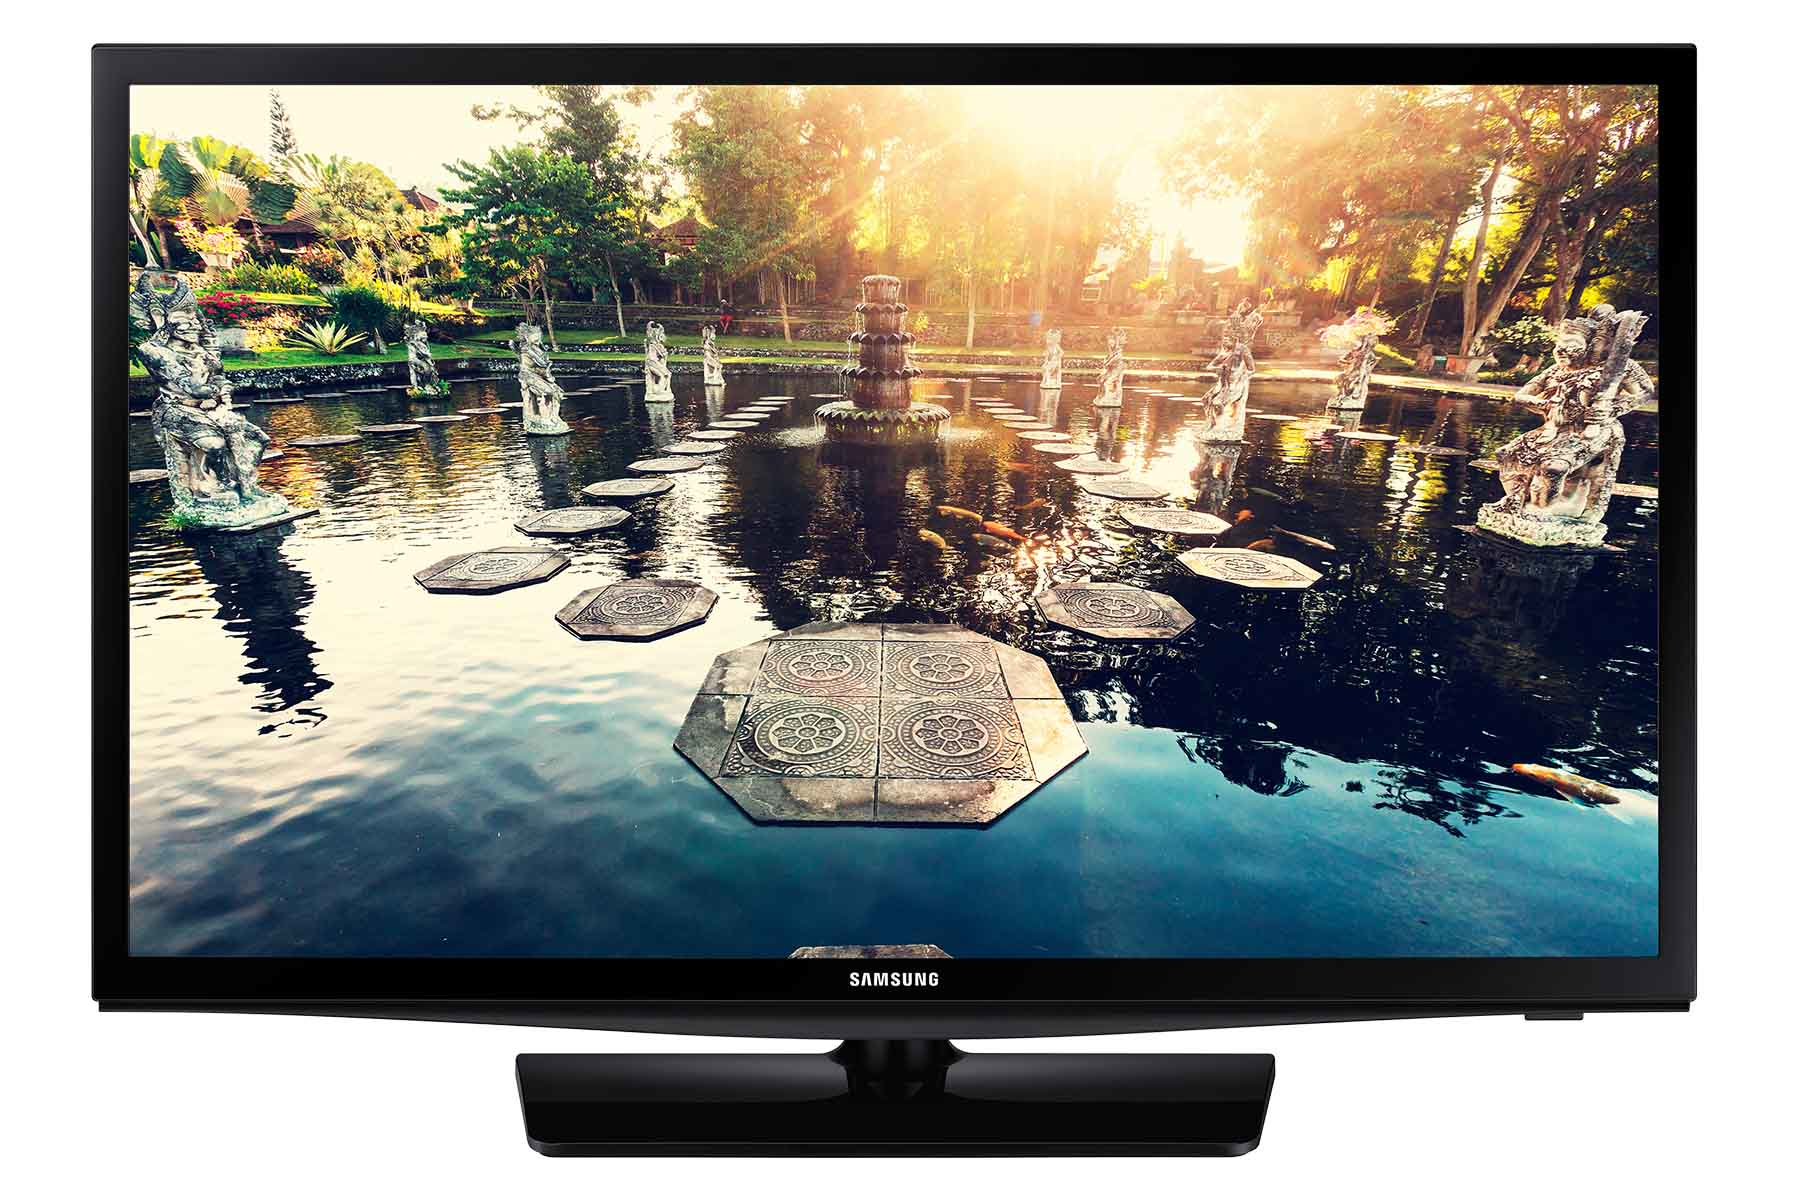 Samsung HG24EE690ABXXU 24 INCH Smart HD Commercial TV